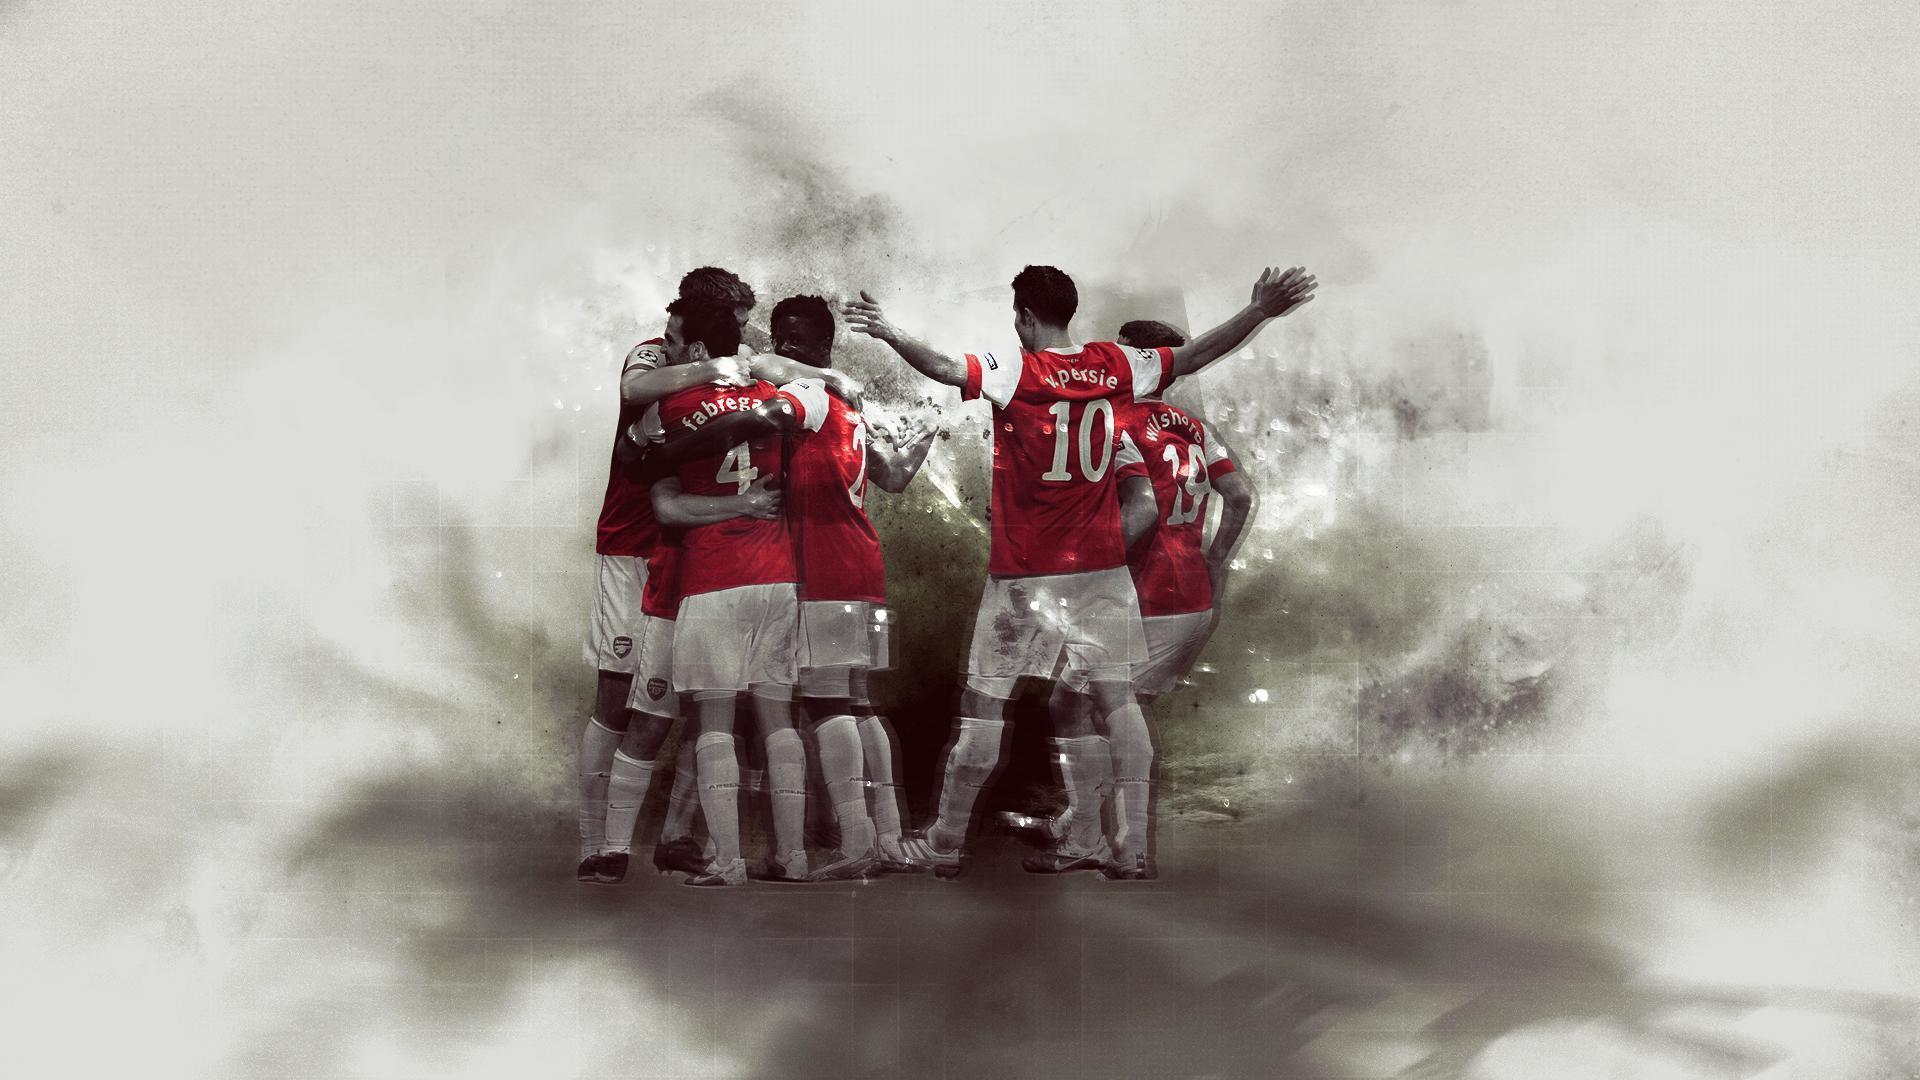 Sick Iphone 4 Wallpapers Arsenal Wallpapers Hd Wallpaper Cave